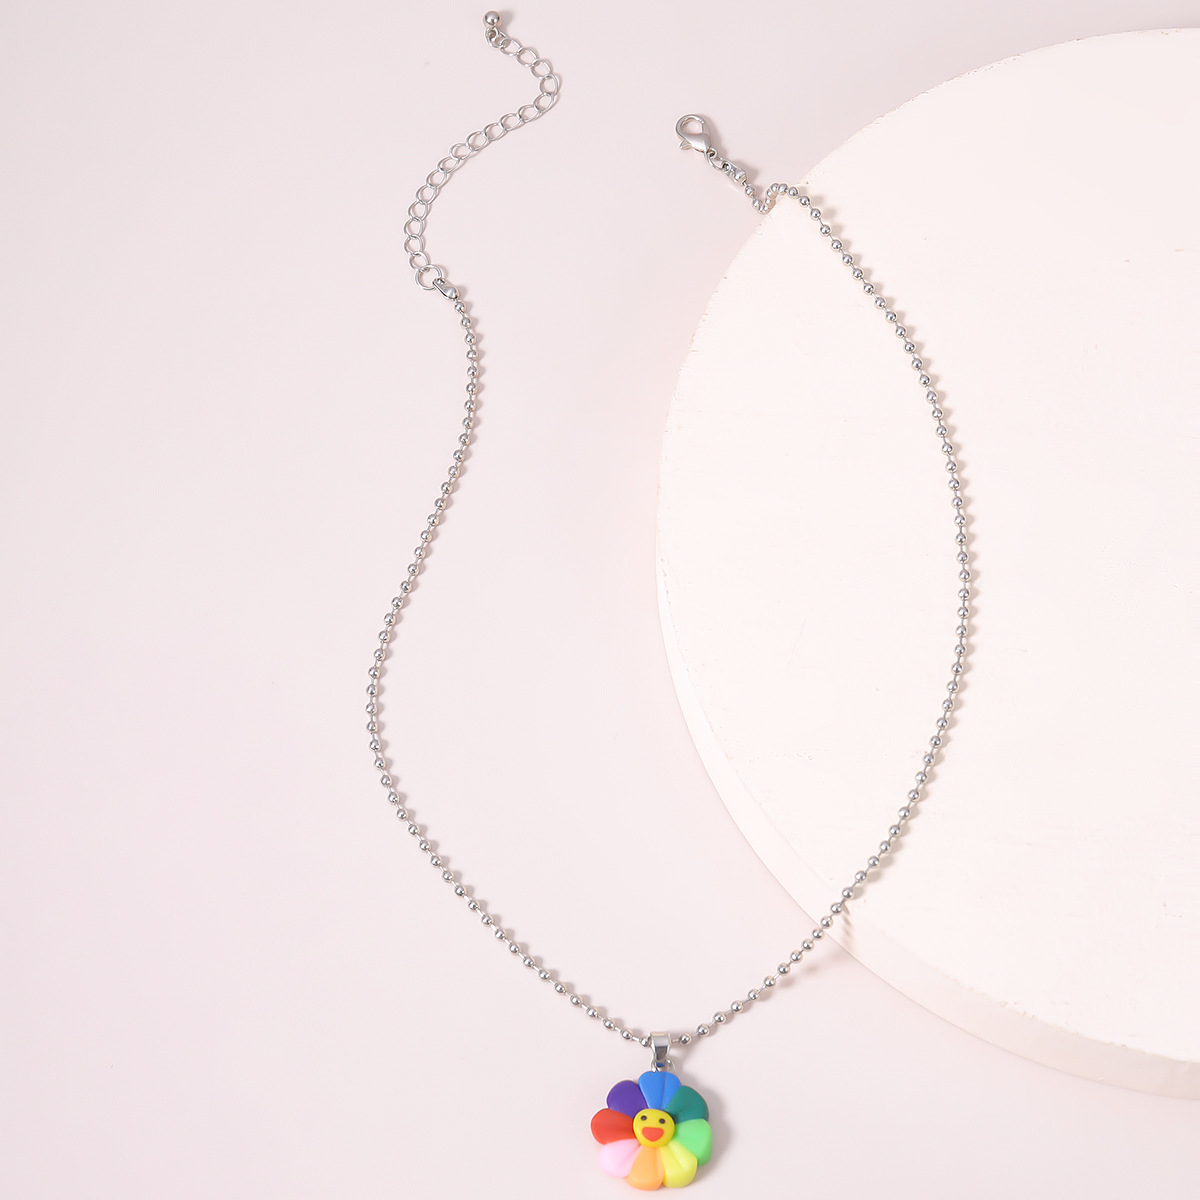 creative jewelry fashion simple round bead chain smiley face necklace retro acrylic pendant necklace wholesale nihaojewelry NHXR236355